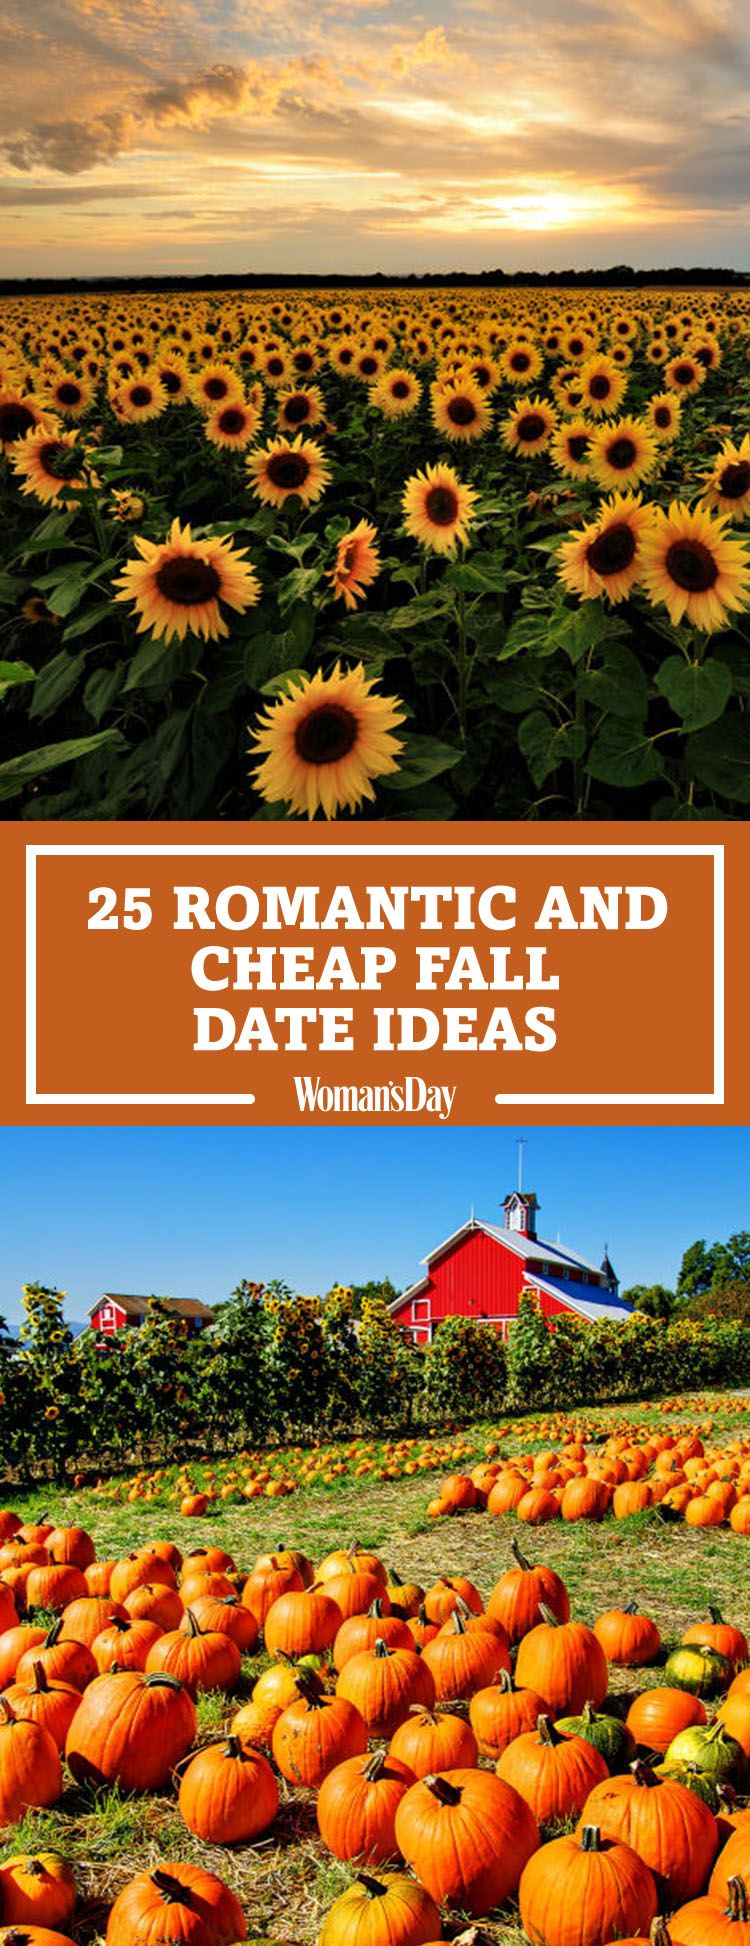 romantic date ideas indianapolis